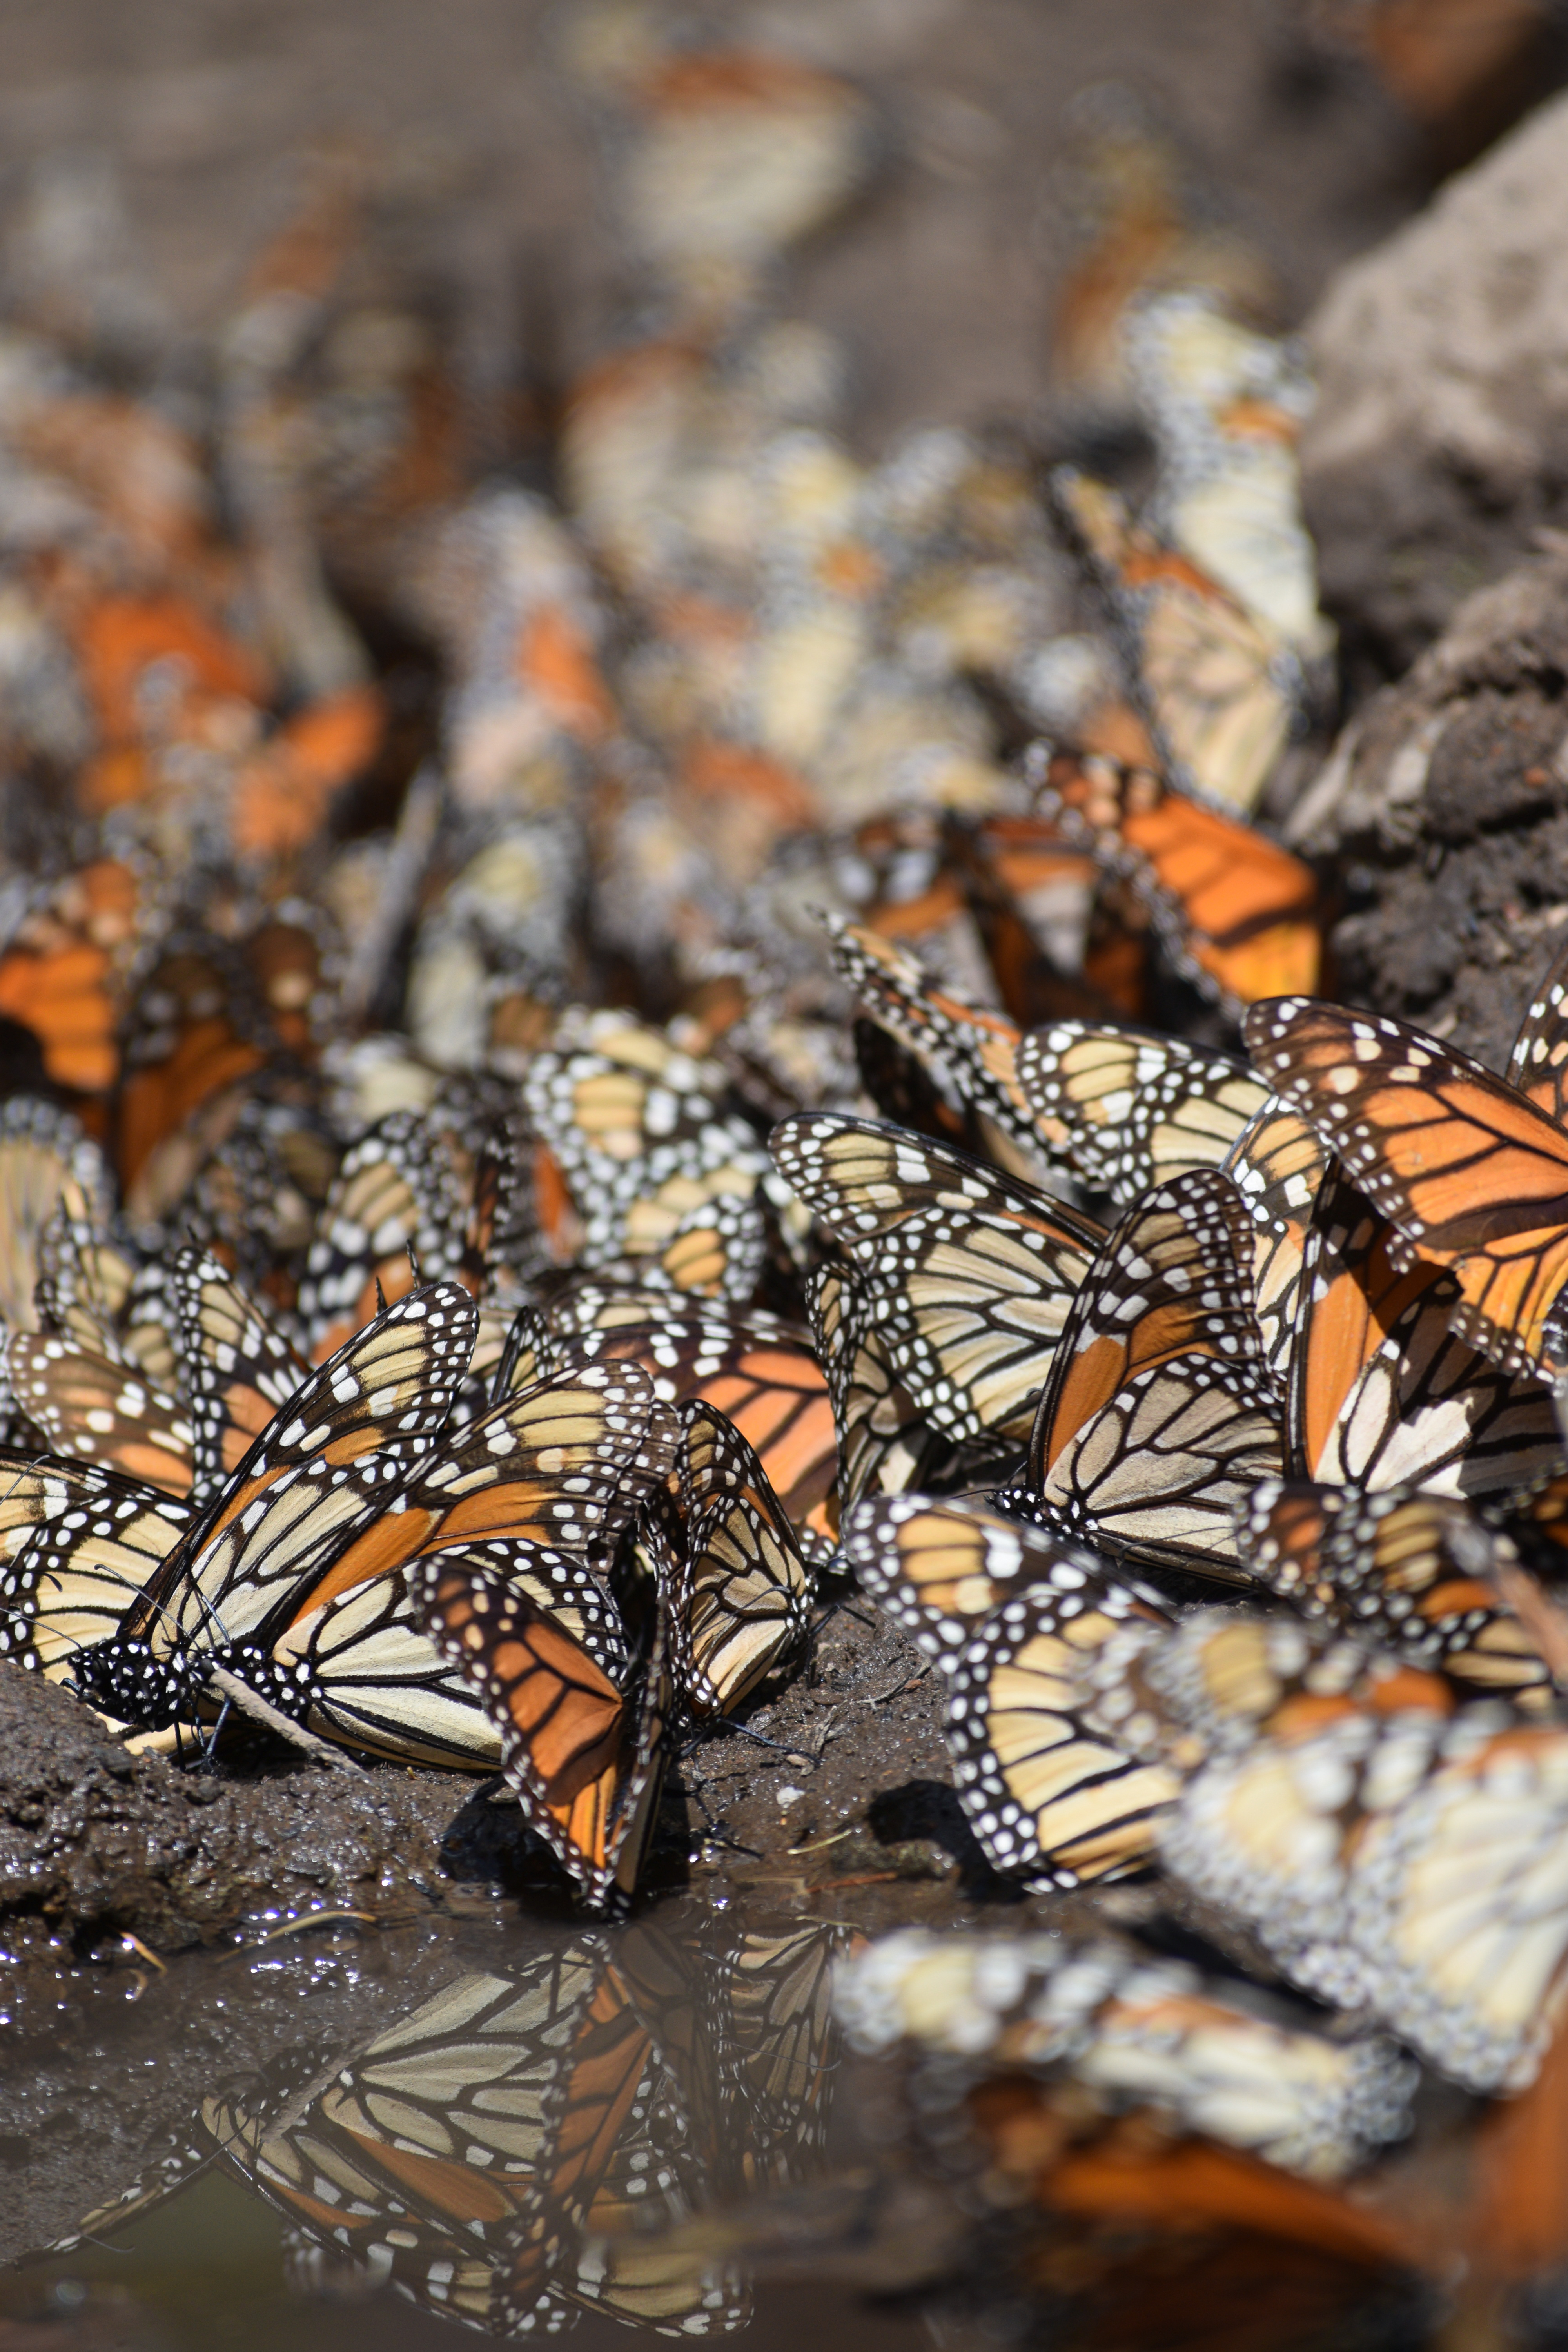 Monarchs stand close together on muddy ground on the edge of a puddle.